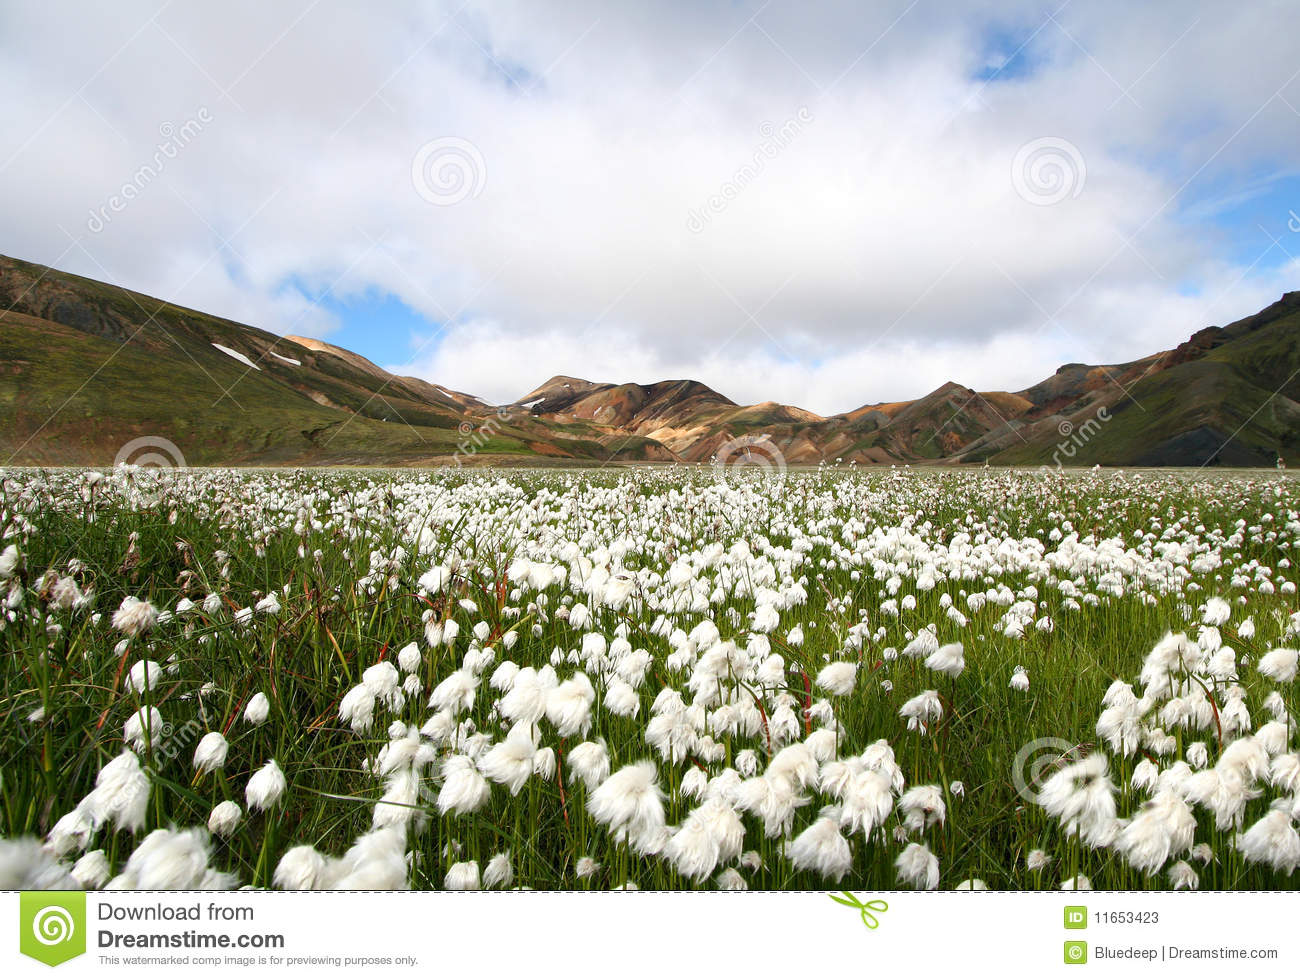 Download Artic Cotton And Coloured Mountains Stock Image - Image of nature, spectrum: 11653423